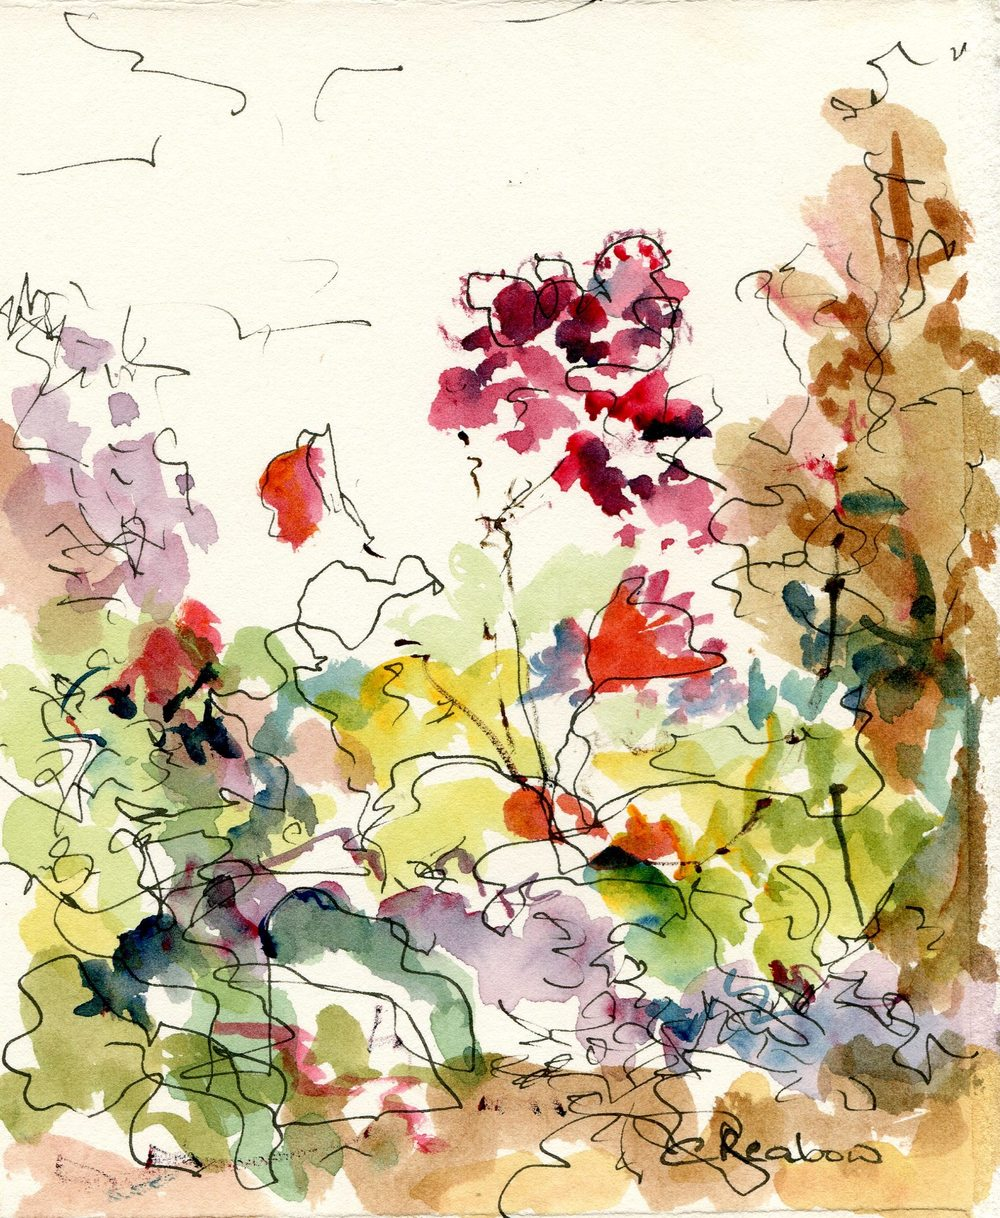 60a Reabow,Chris- Floral Study I, Watercolour and Ink.jpg